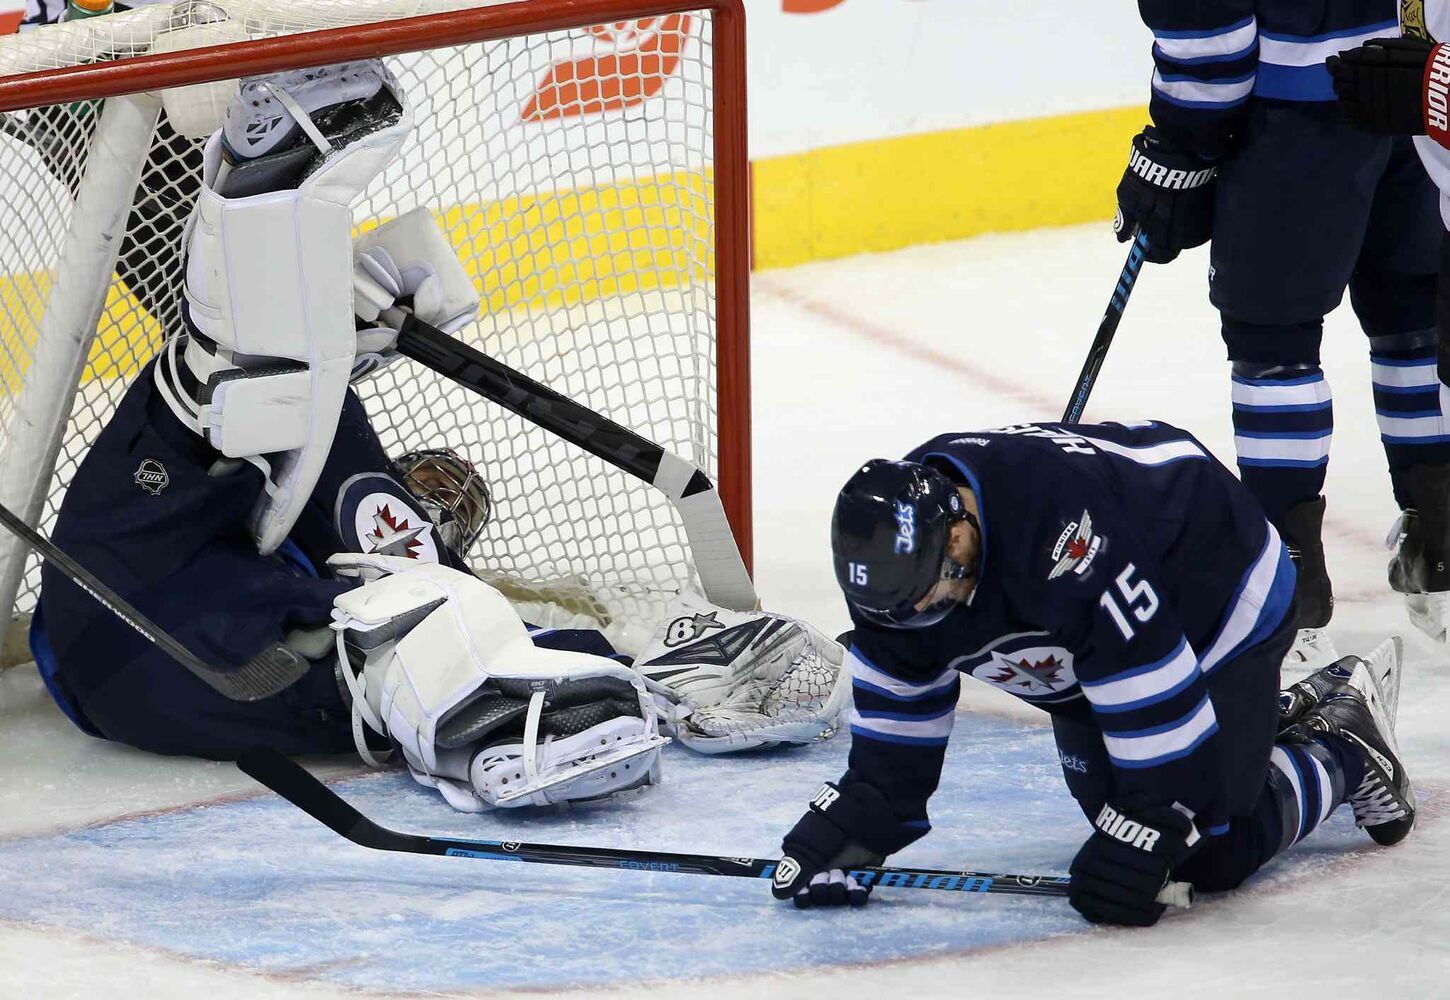 Winnipeg Jets' goaltender Ondrej Pavelec (31) lies in the net after a puck took a strange bounce off of Matt Halischuk (15). The goal was credited to Ottawa Senators' Milan Michalek (9), not shown, during first period NHL hockey action at MTS Centre in Winnipeg Saturday. (TREVOR HAGAN / WINNIPEG FREE PRESS)